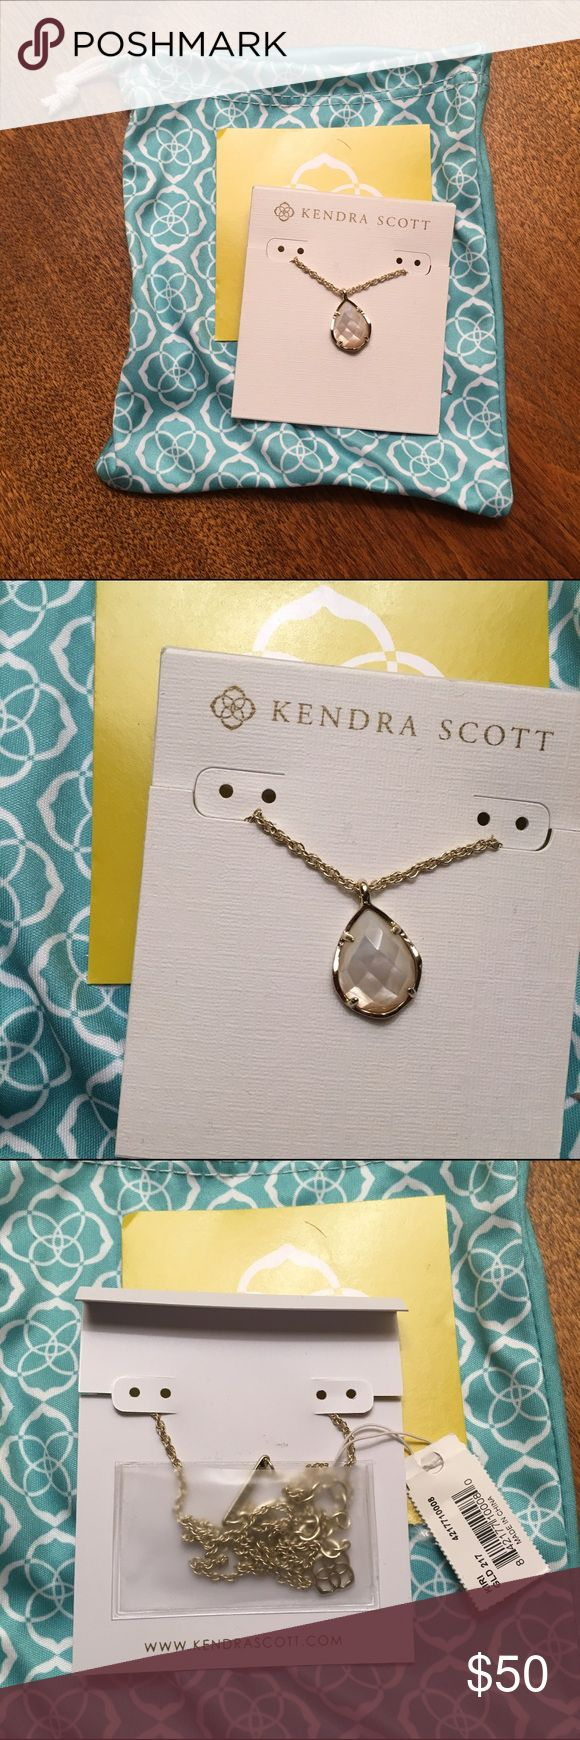 Kendra Scott Kiri necklace beautiful never worn Kiri necklace in ivory pearl by Kendra Scott Kendra Scott Jewelry Necklaces